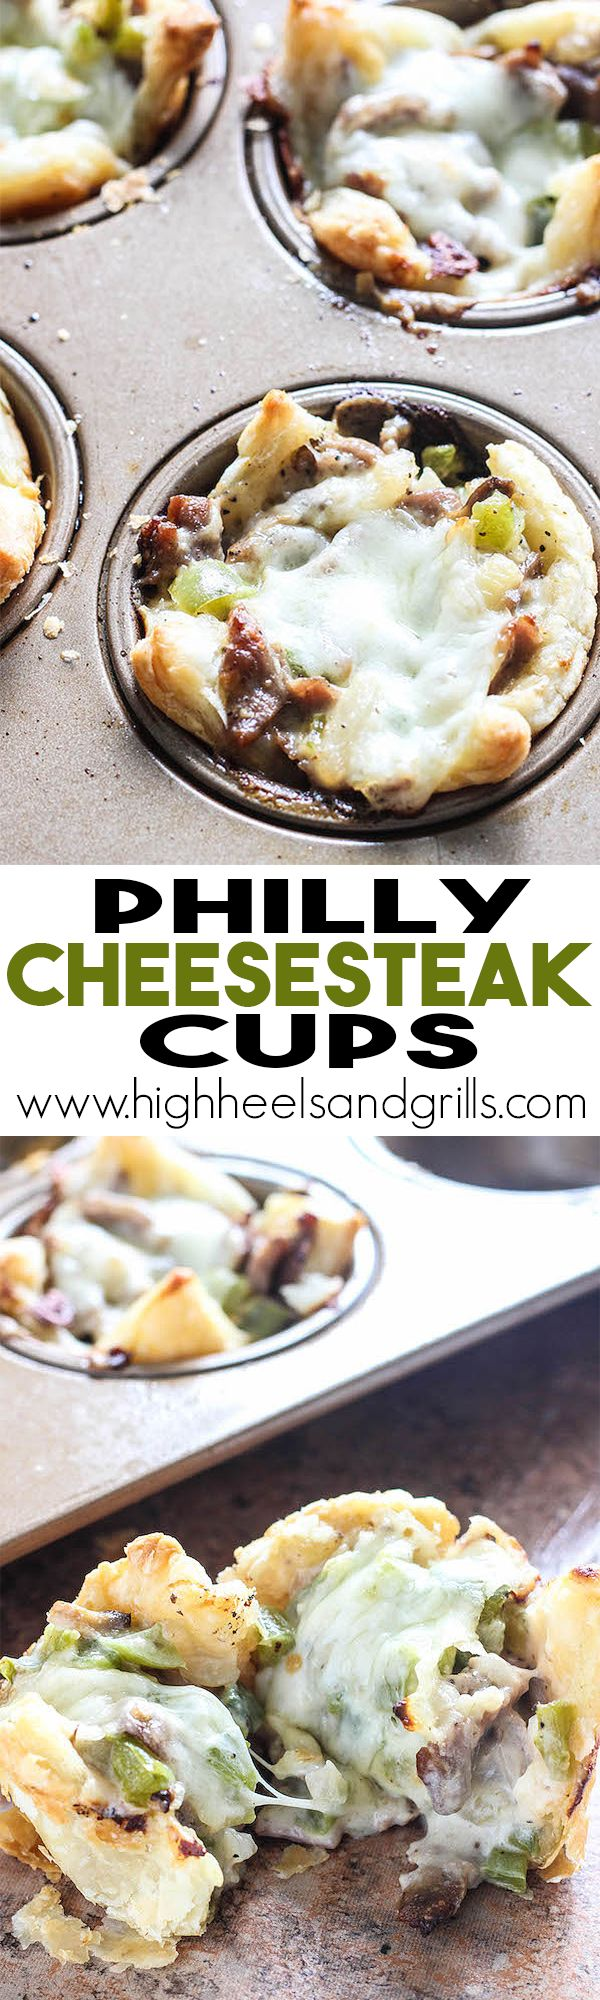 Philly Cheesesteak Cups - An easy dinner recipe that tastes so good!